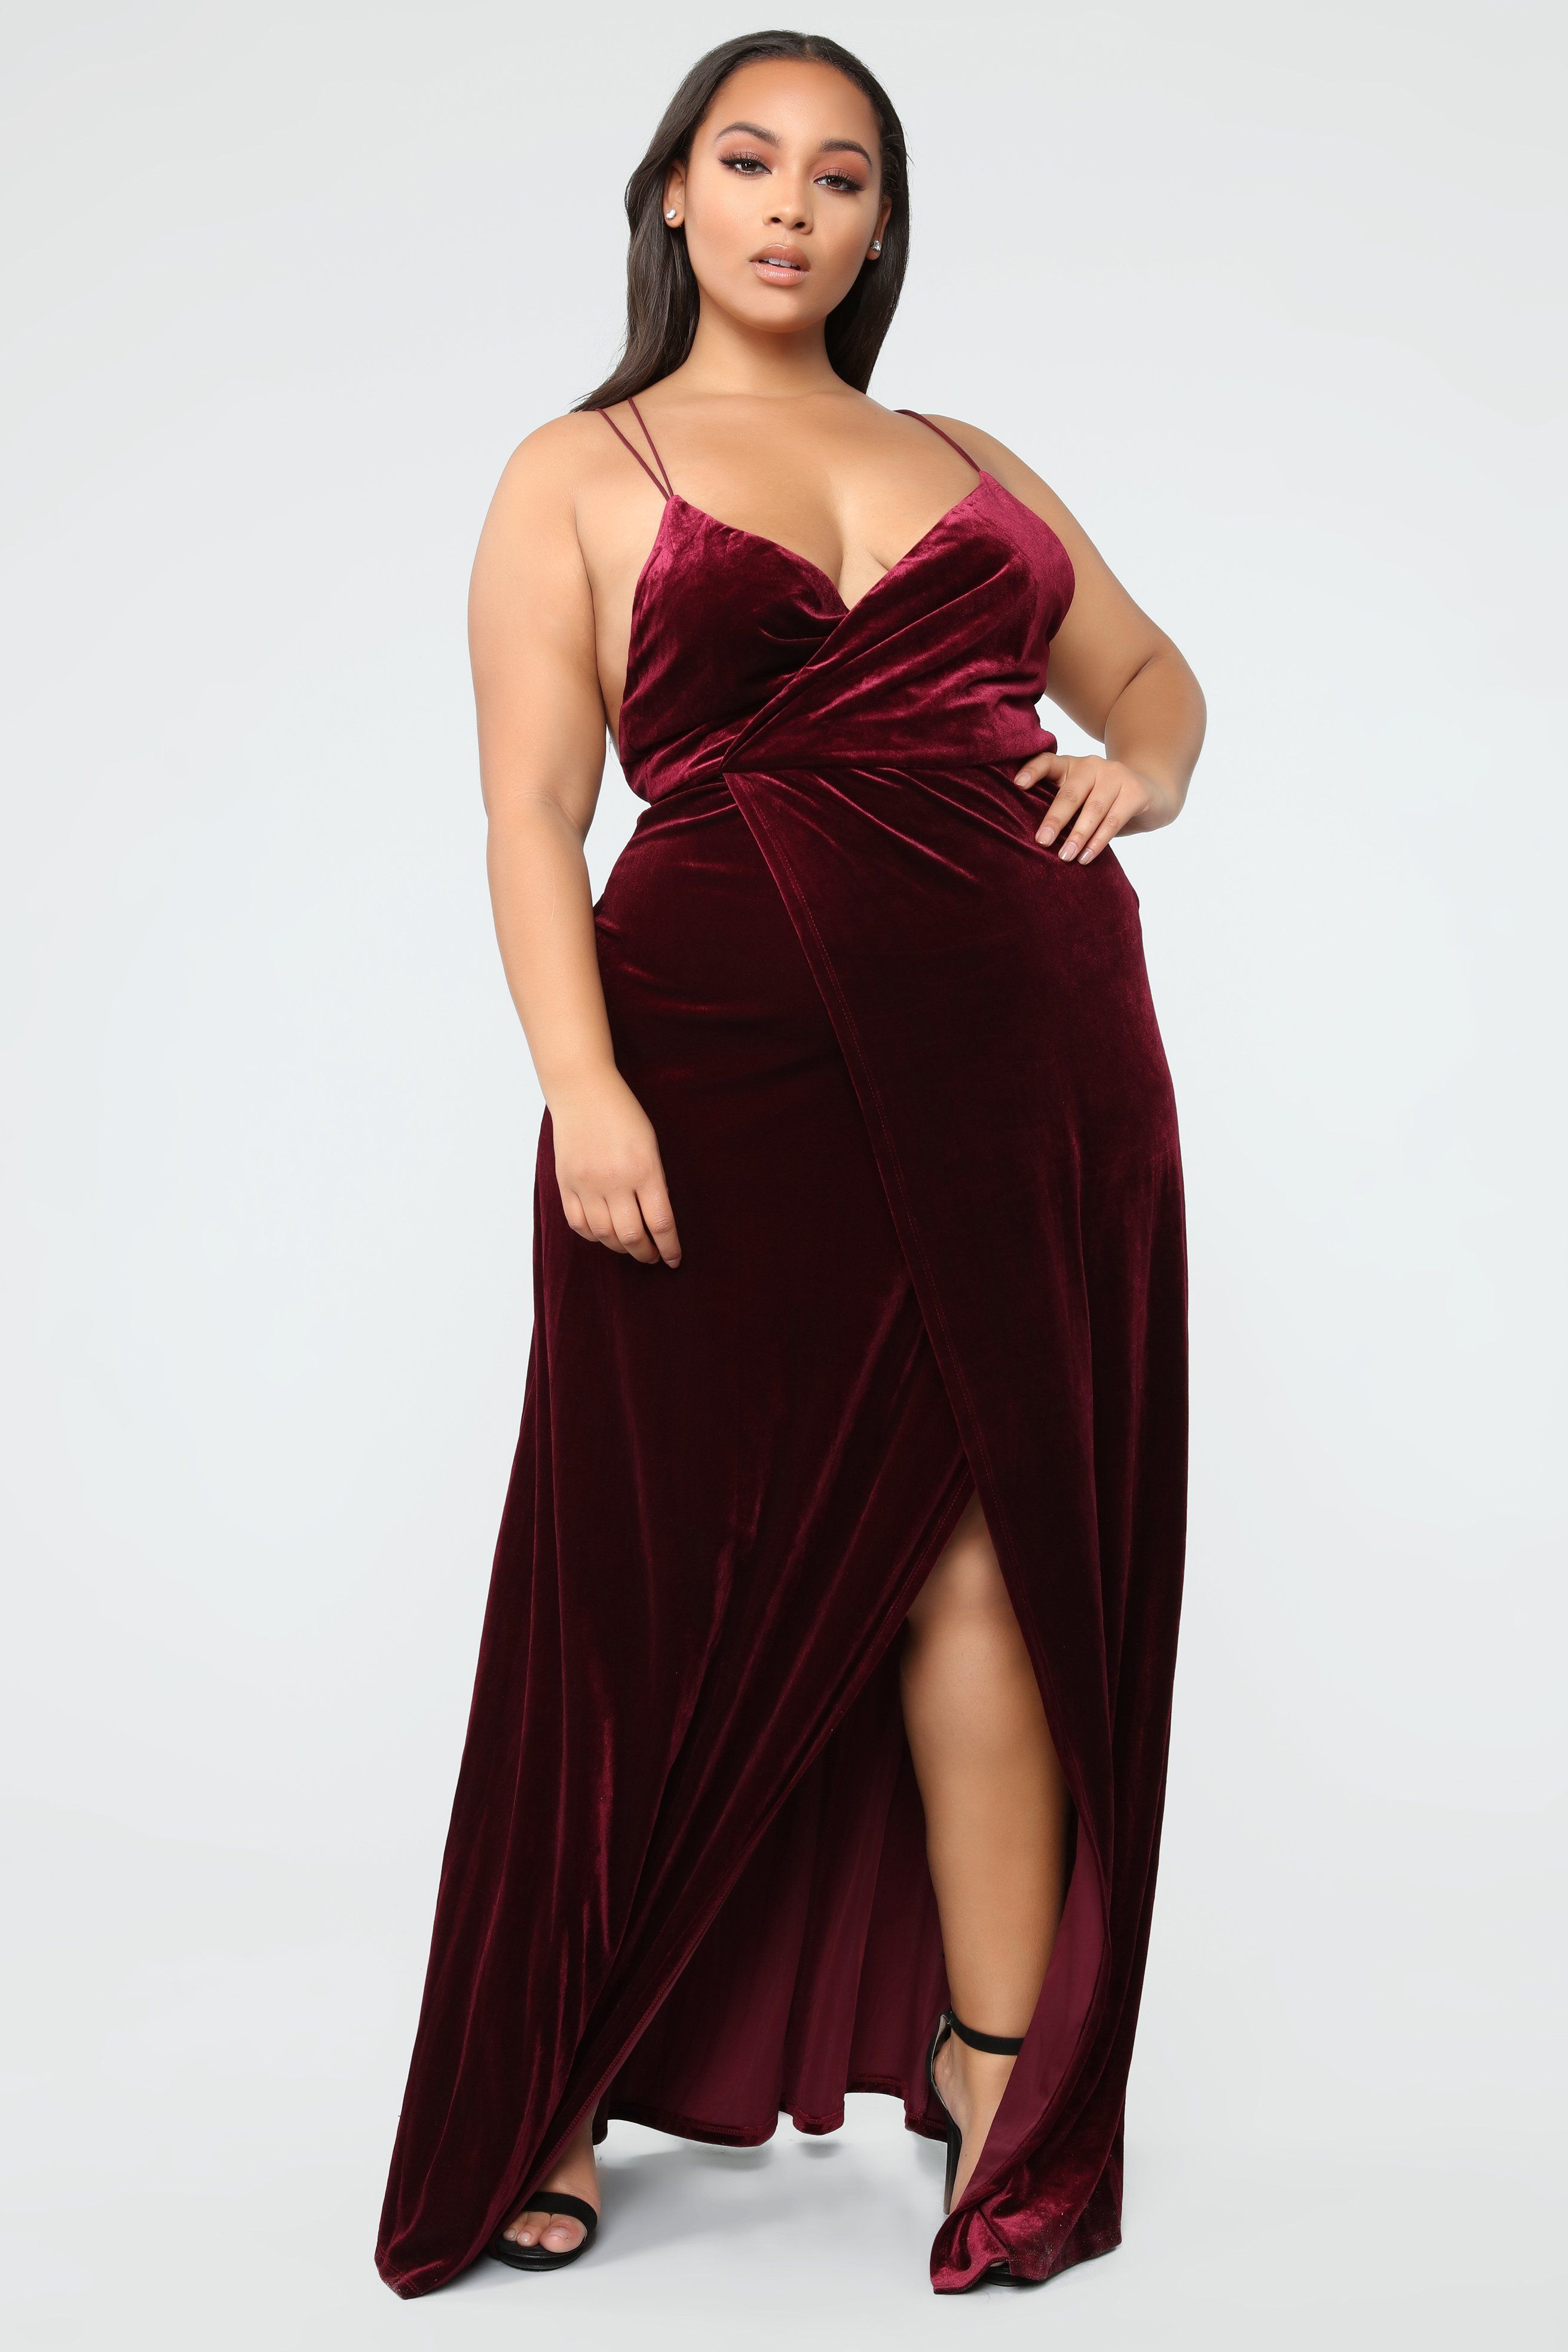 Lady Short Spandex Party Pageant Dress Formal Bridal Prom Evening Cocktail Dress